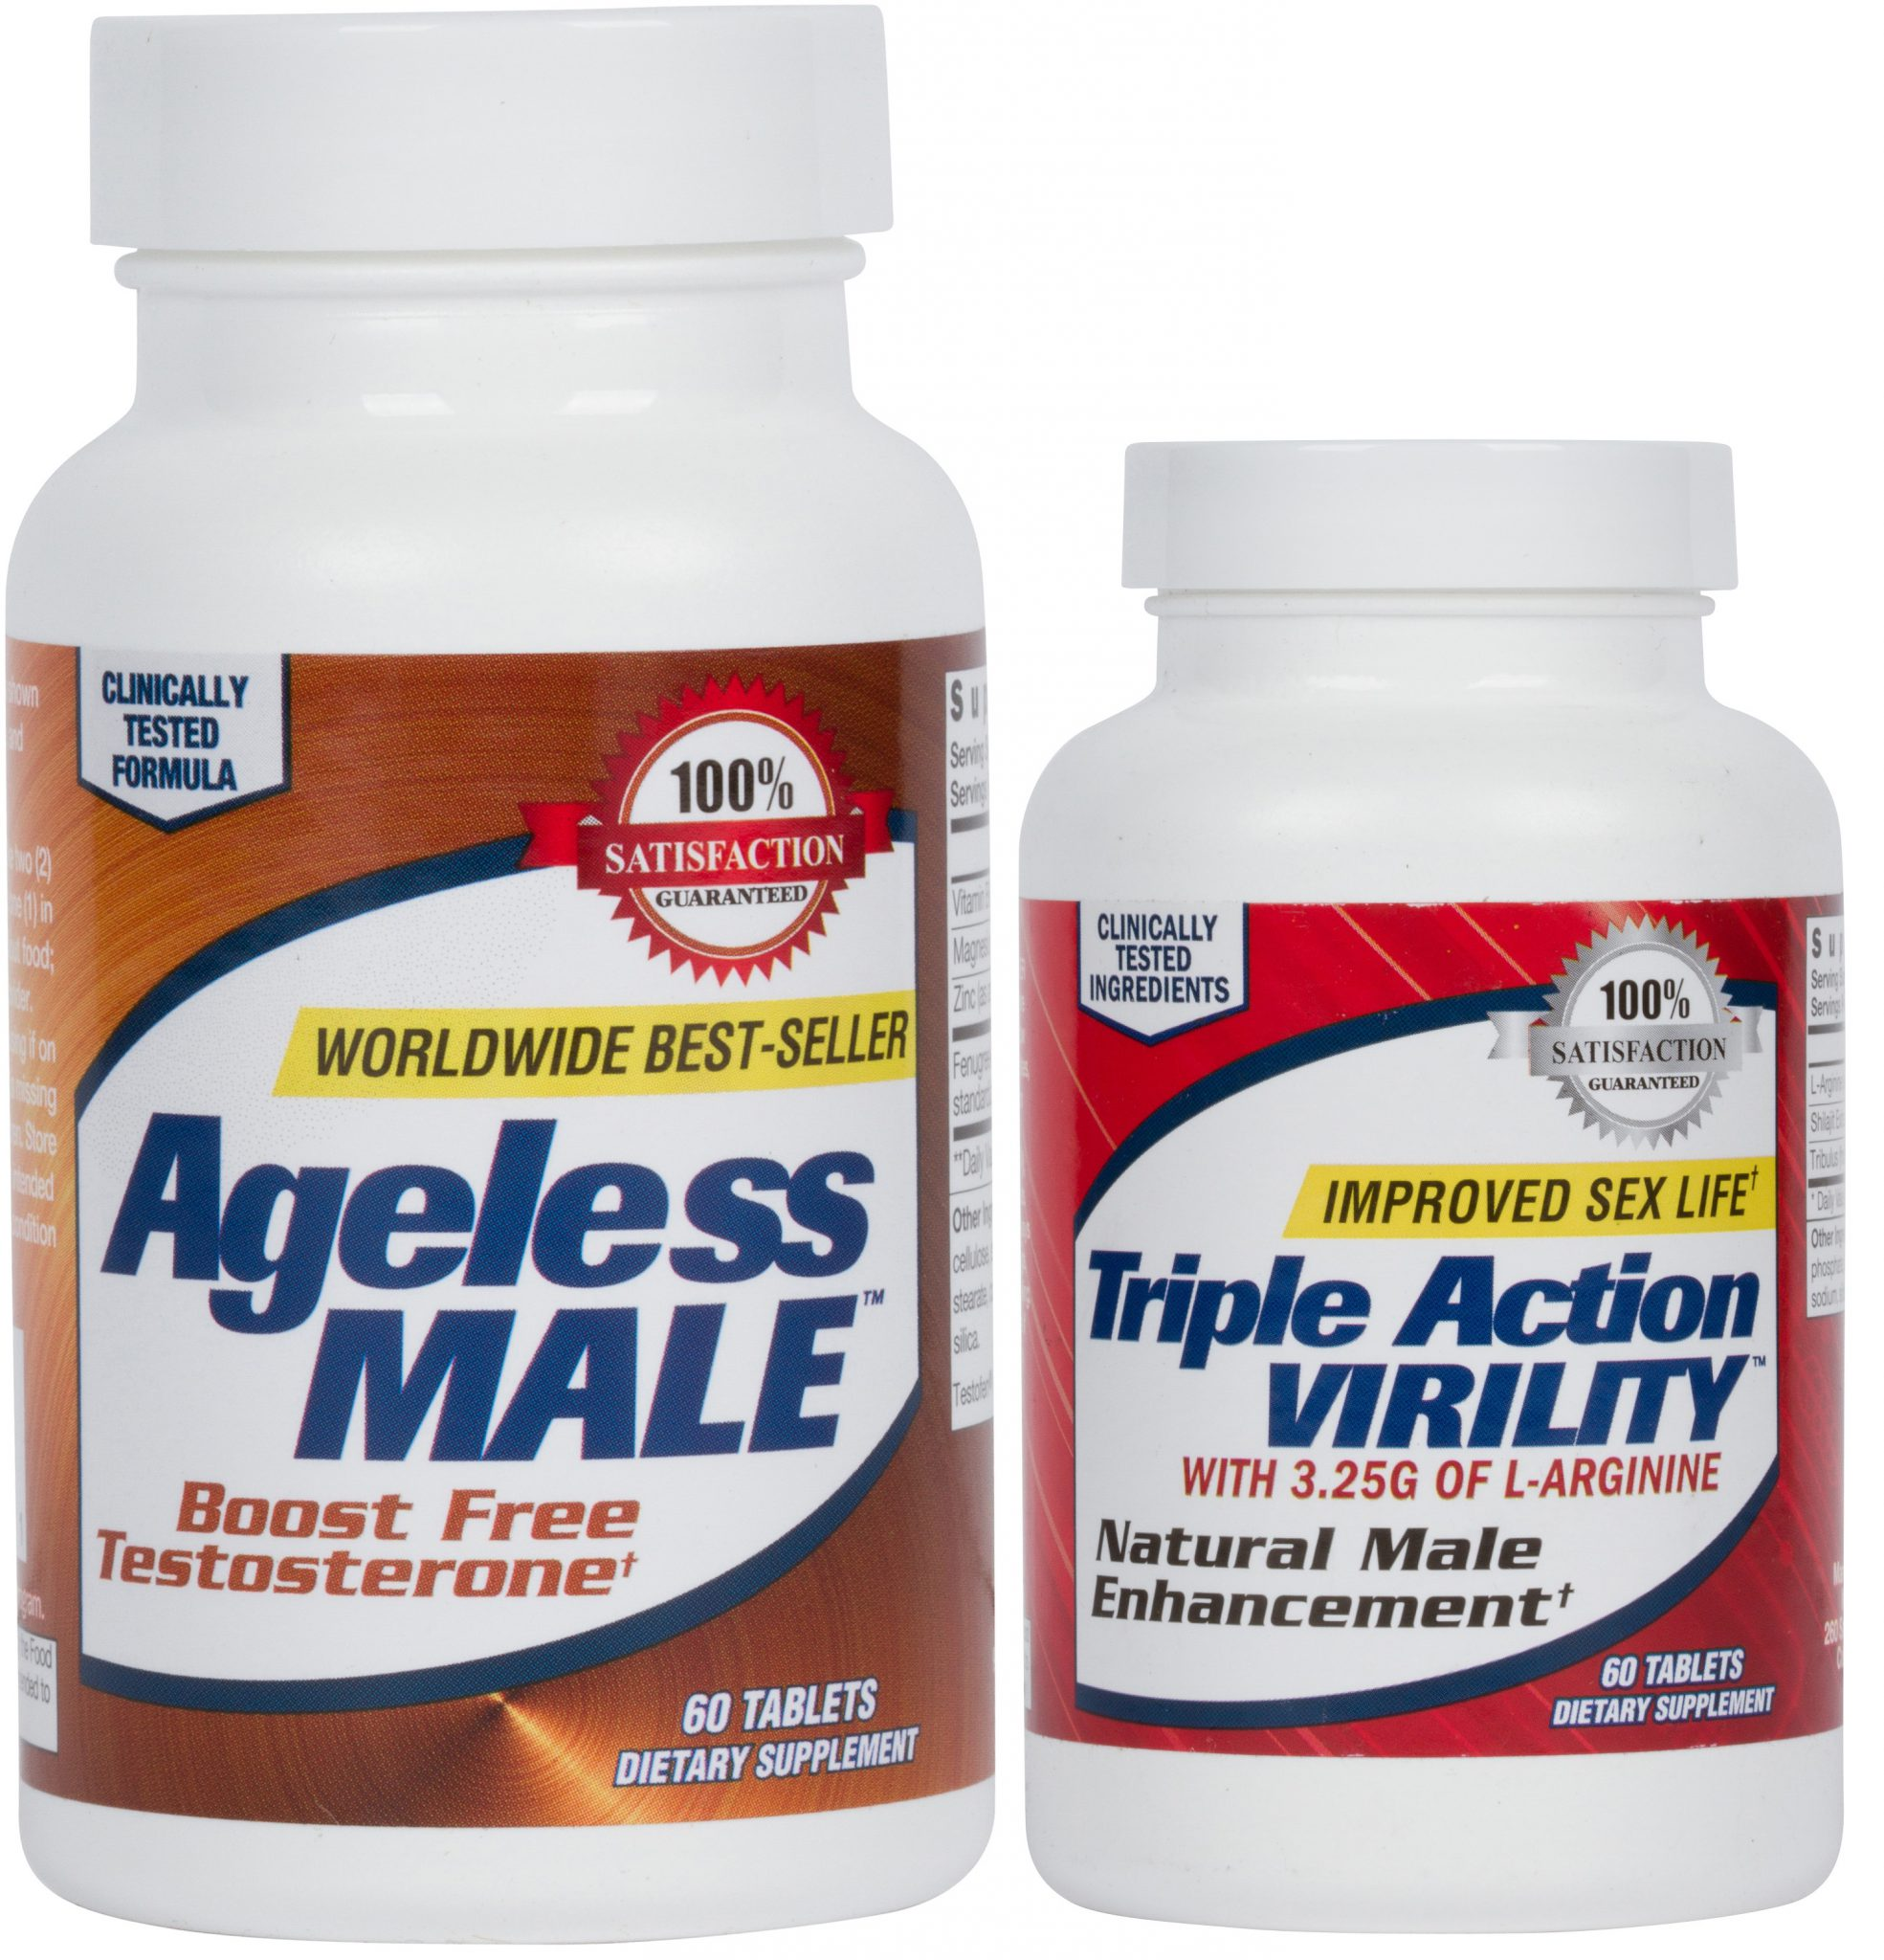 Top 3 Methods To Enhance Testosterone Levels Naturally!